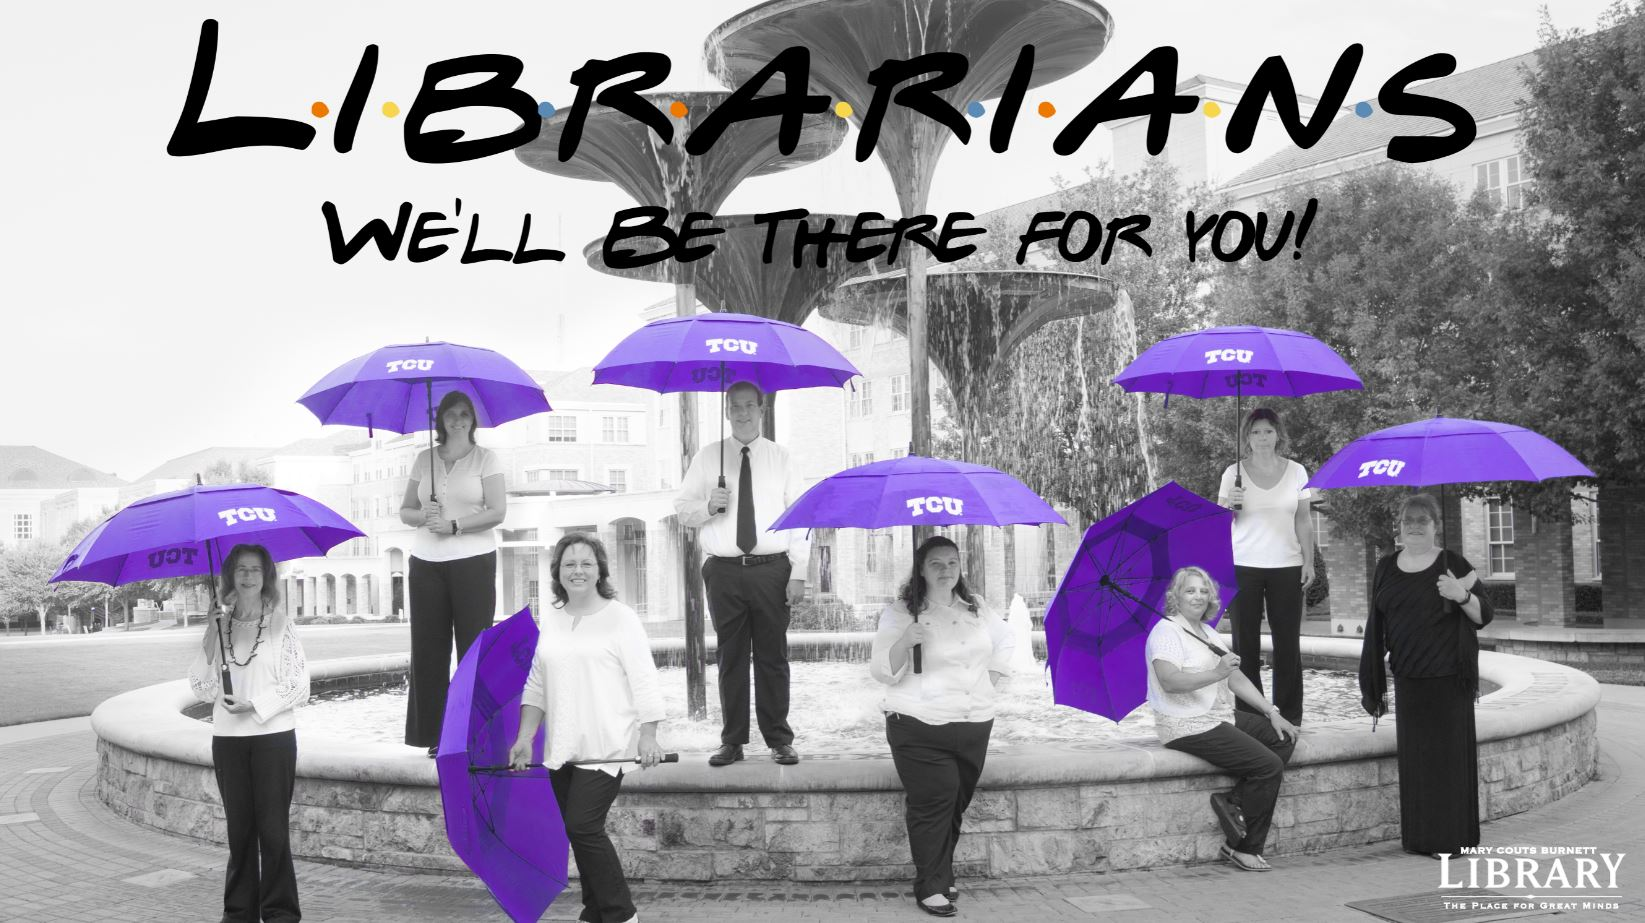 Librarians in front of Frog Fountain with Umbrellas